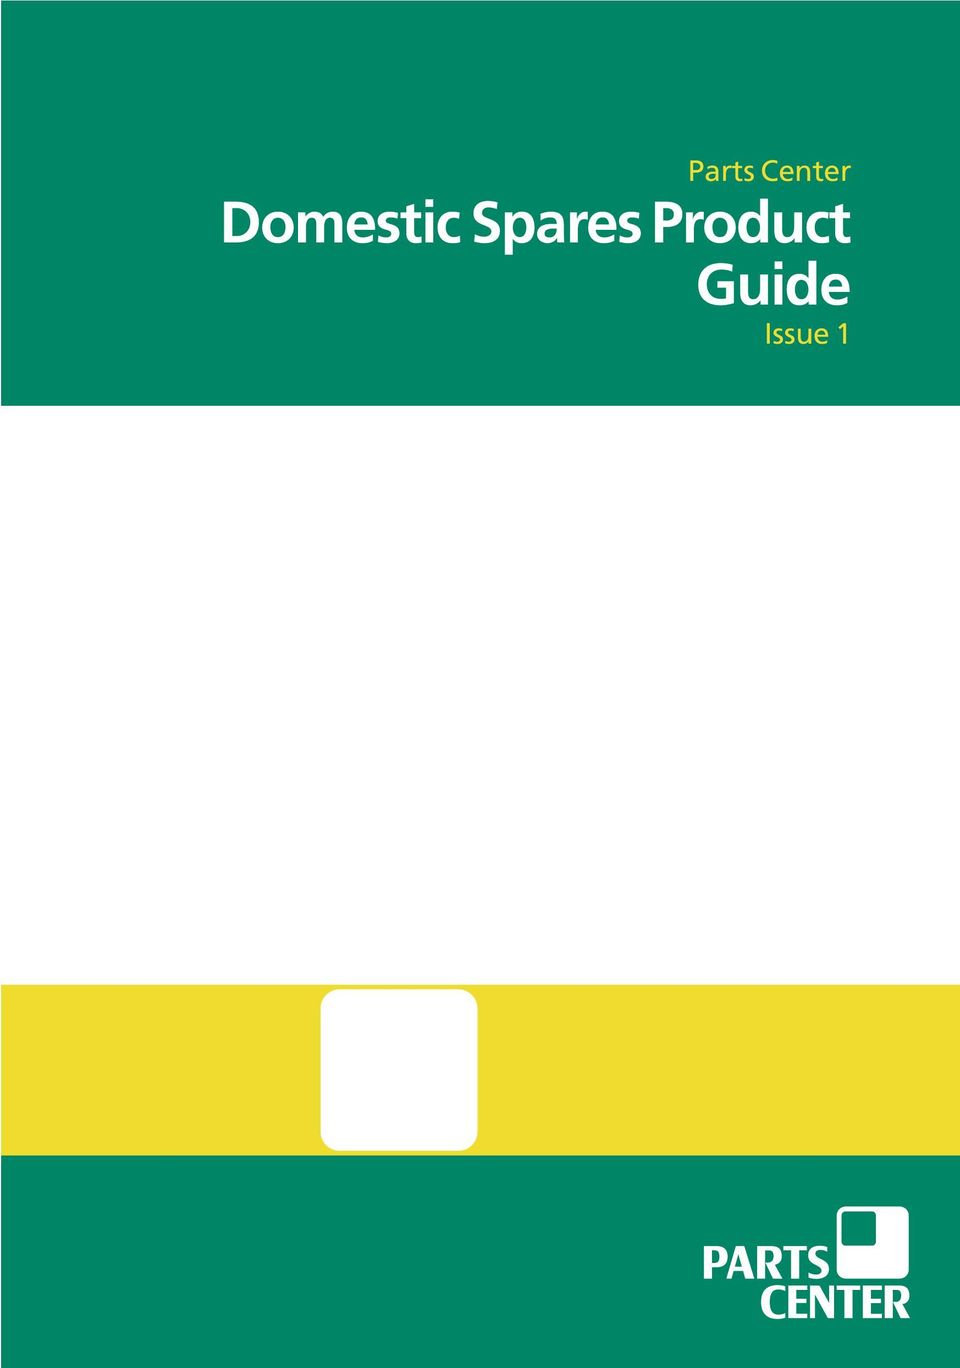 Domestic Spares Product Guide - PDF